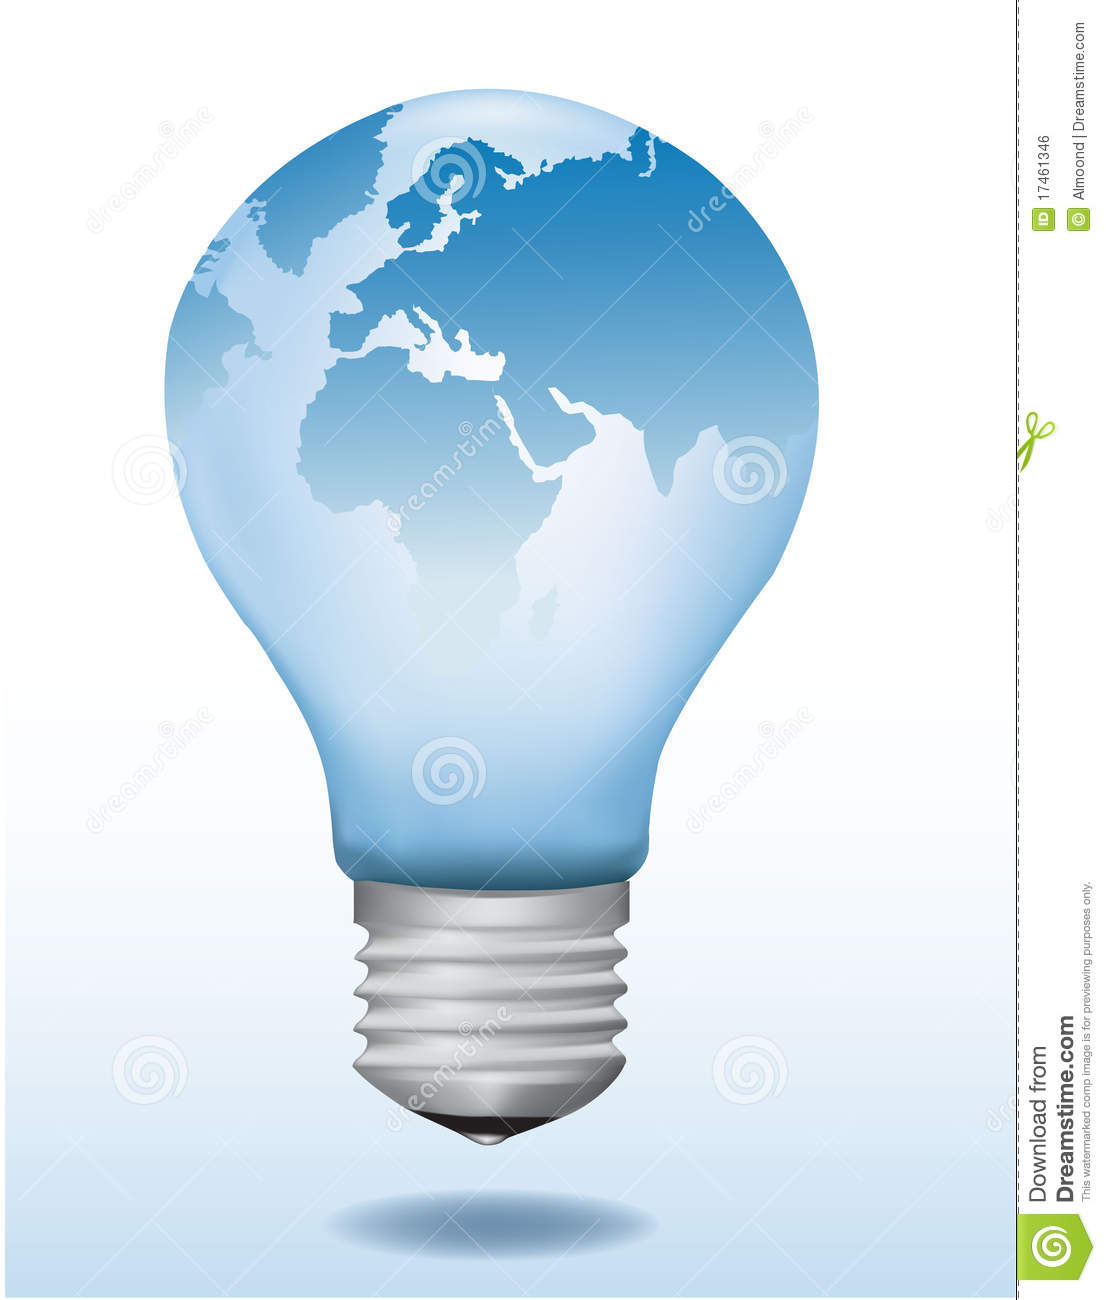 Light Bulb With World Map On It Stock Vector